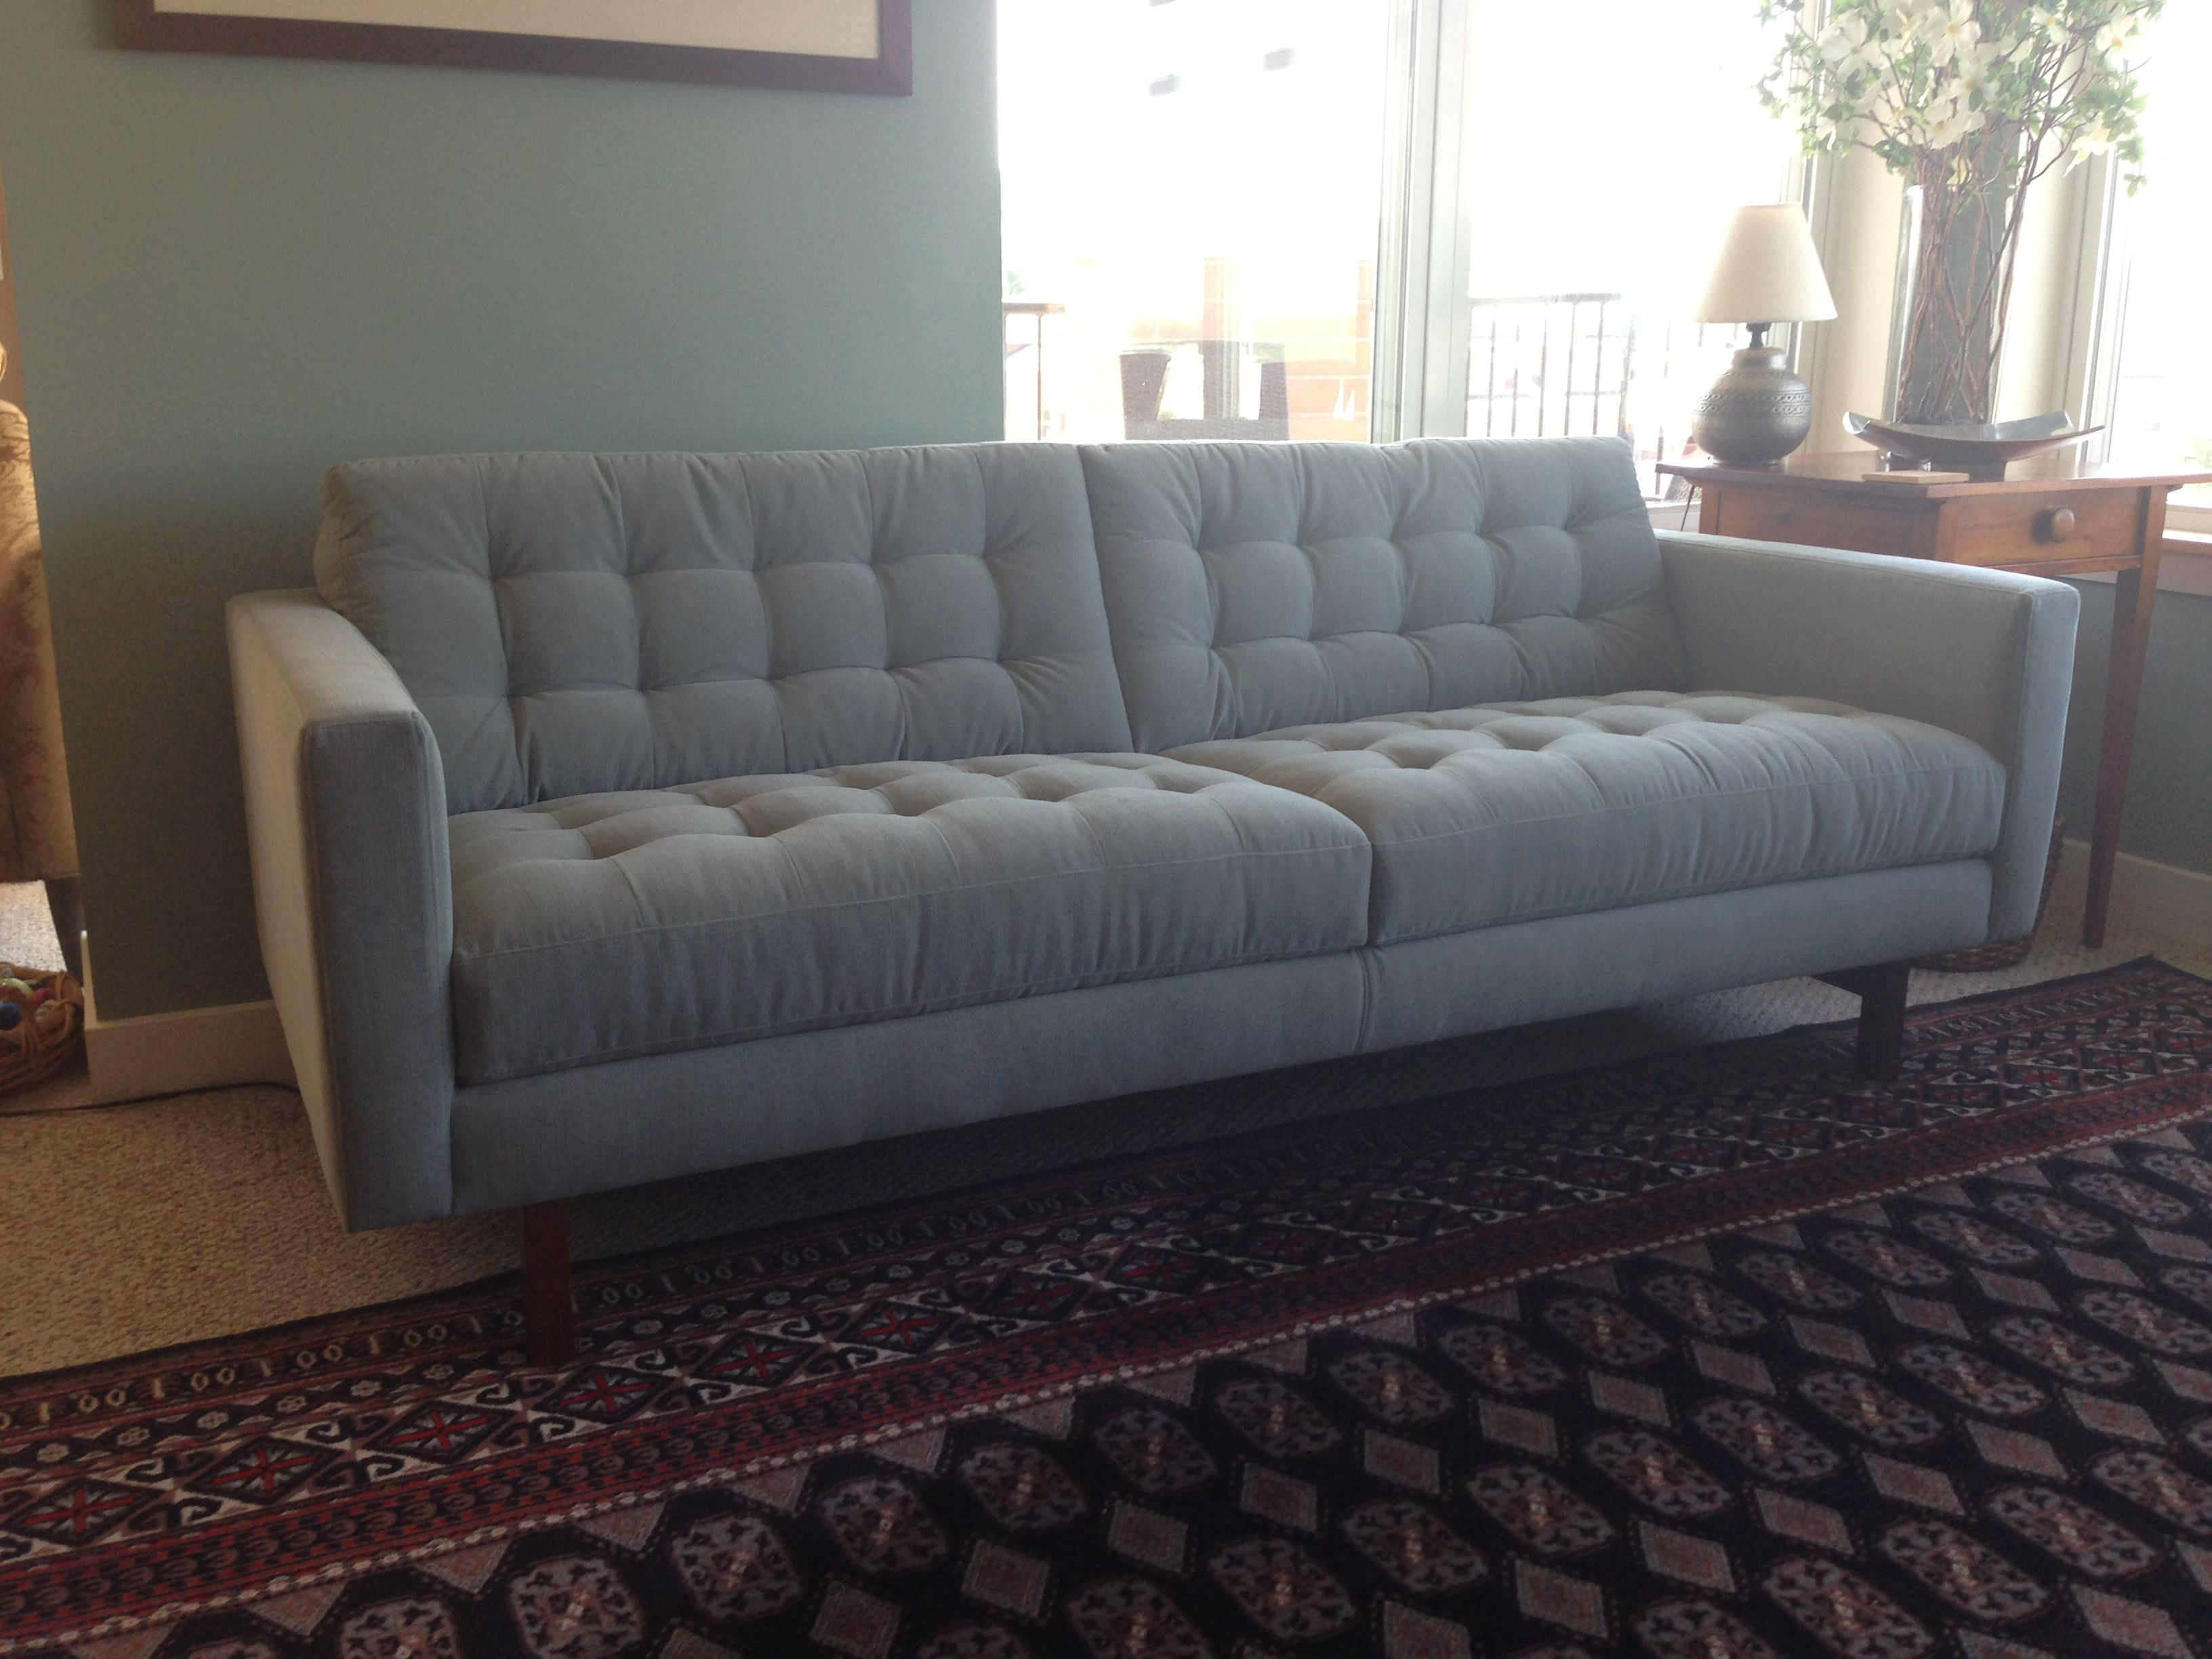 Our new American Leather sofa the Parker in Mineral just arrived